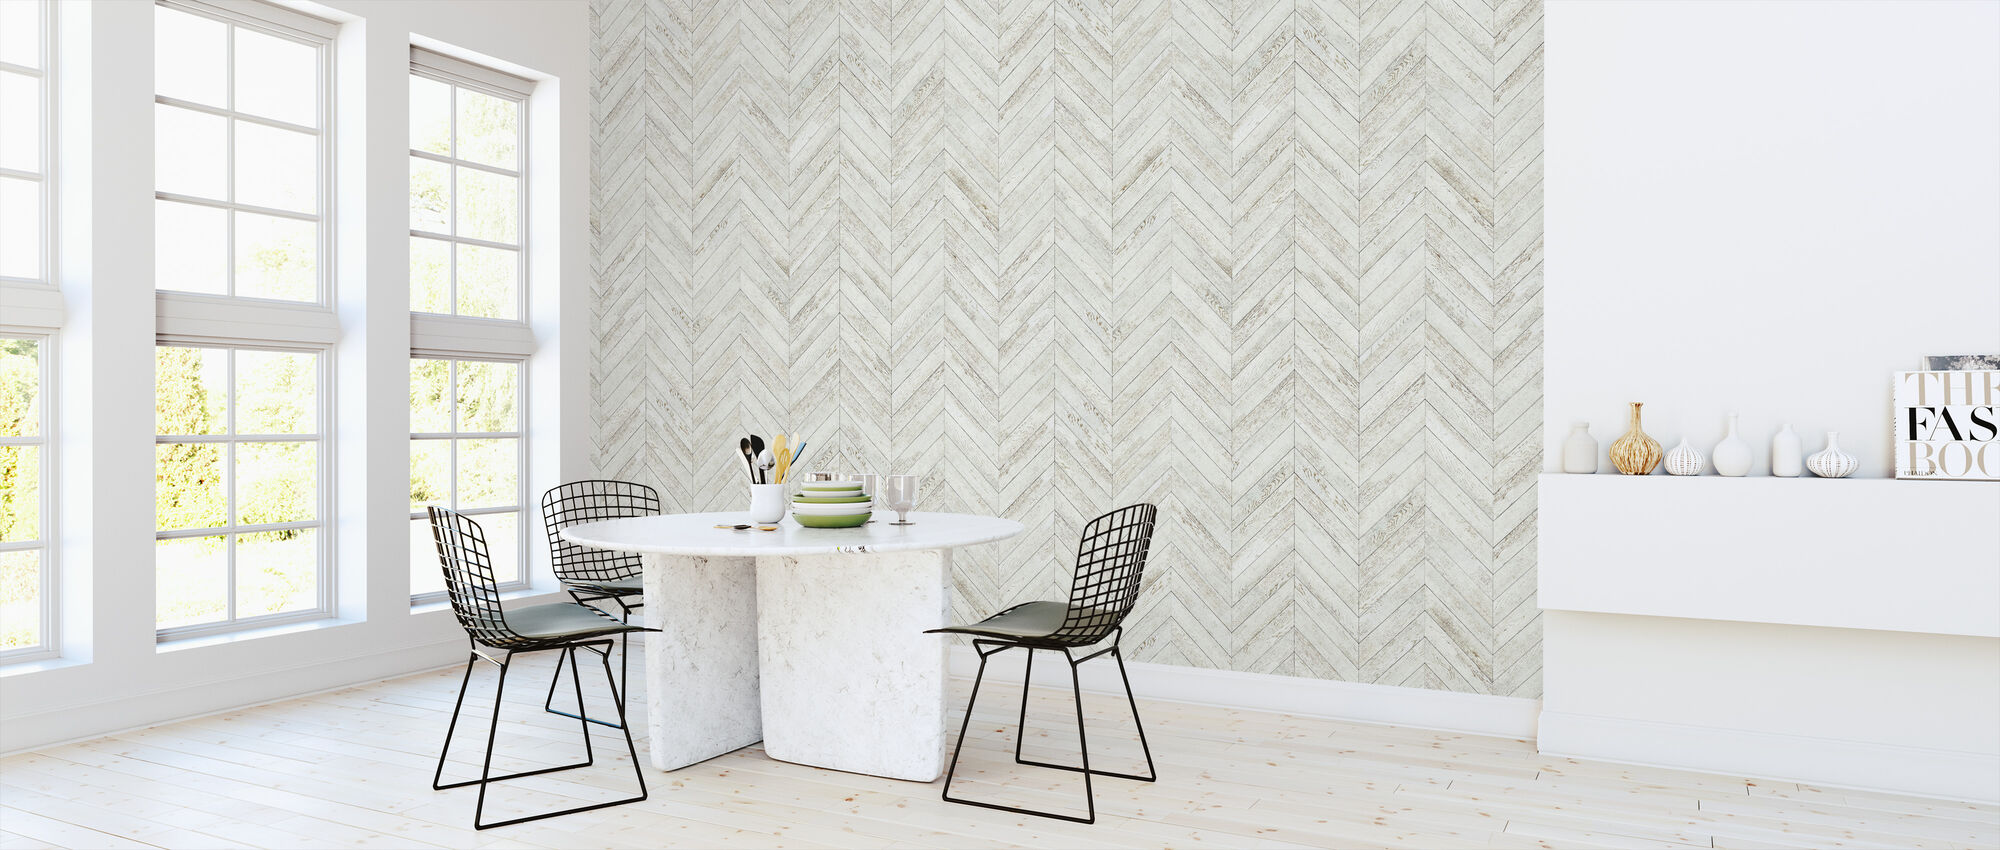 Chevron Parquet - White - Wallpaper - Kitchen